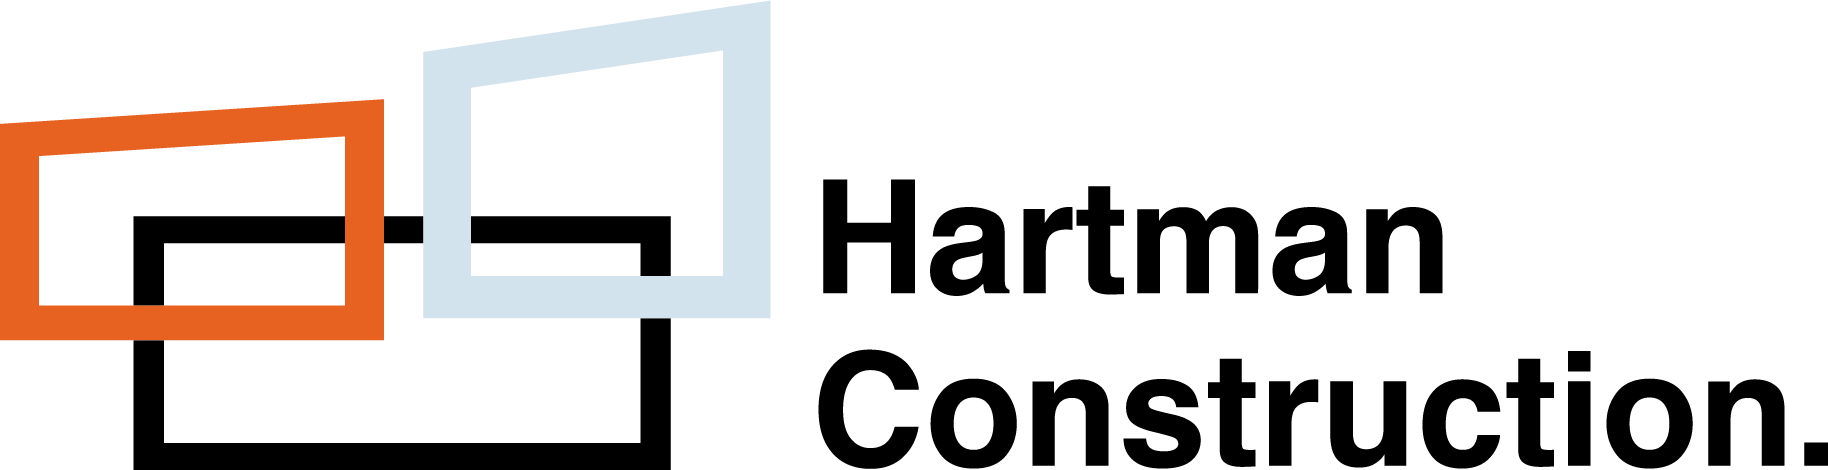 2019 Home Tour - Hartman Construction logo